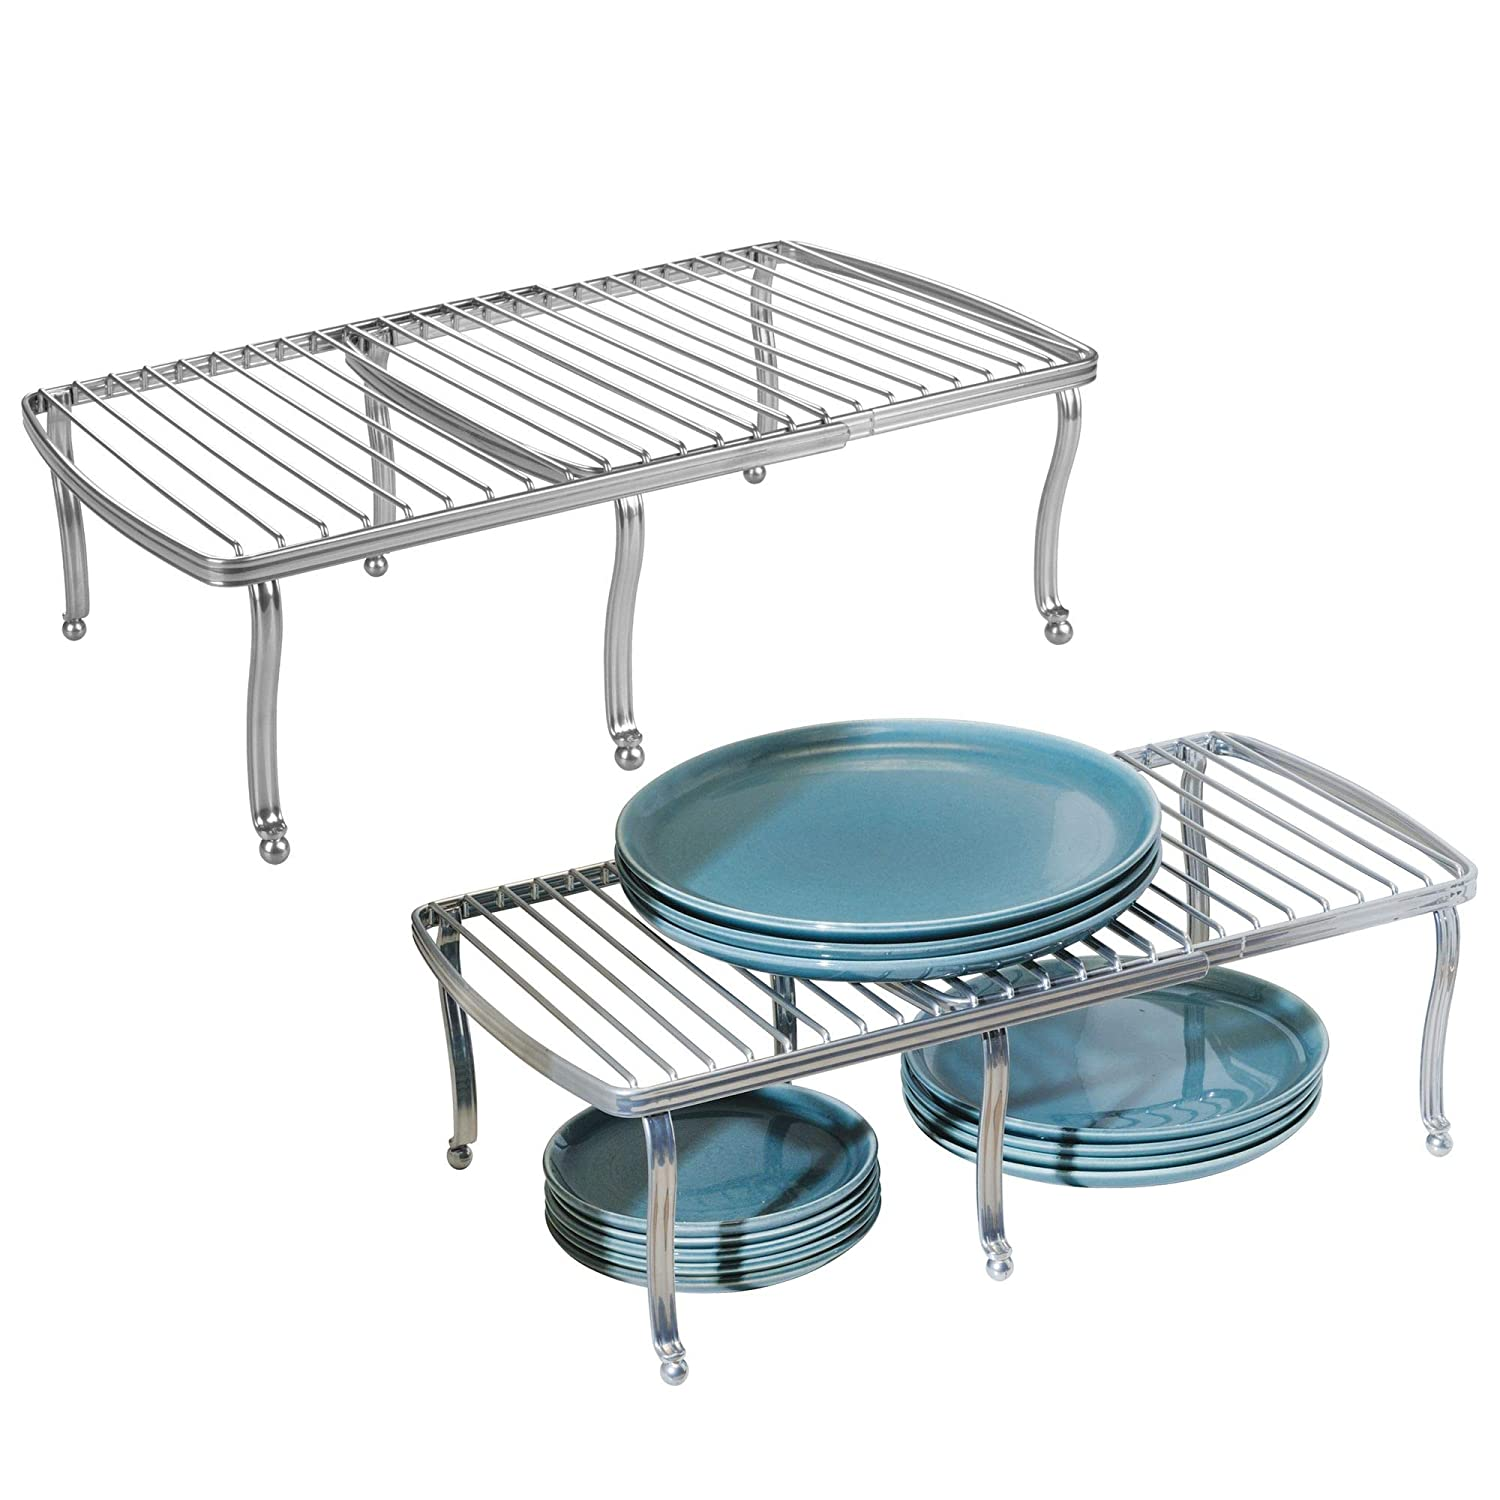 mDesign Adjustable, Expandable Wire Metal Kitchen Cabinet, Pantry, Countertop Organizer Storage Shelf - for Dishes, Dinnerware, Cookware, Spices, Mugs, Cups, Canned Food, 4 Pieces - Silver